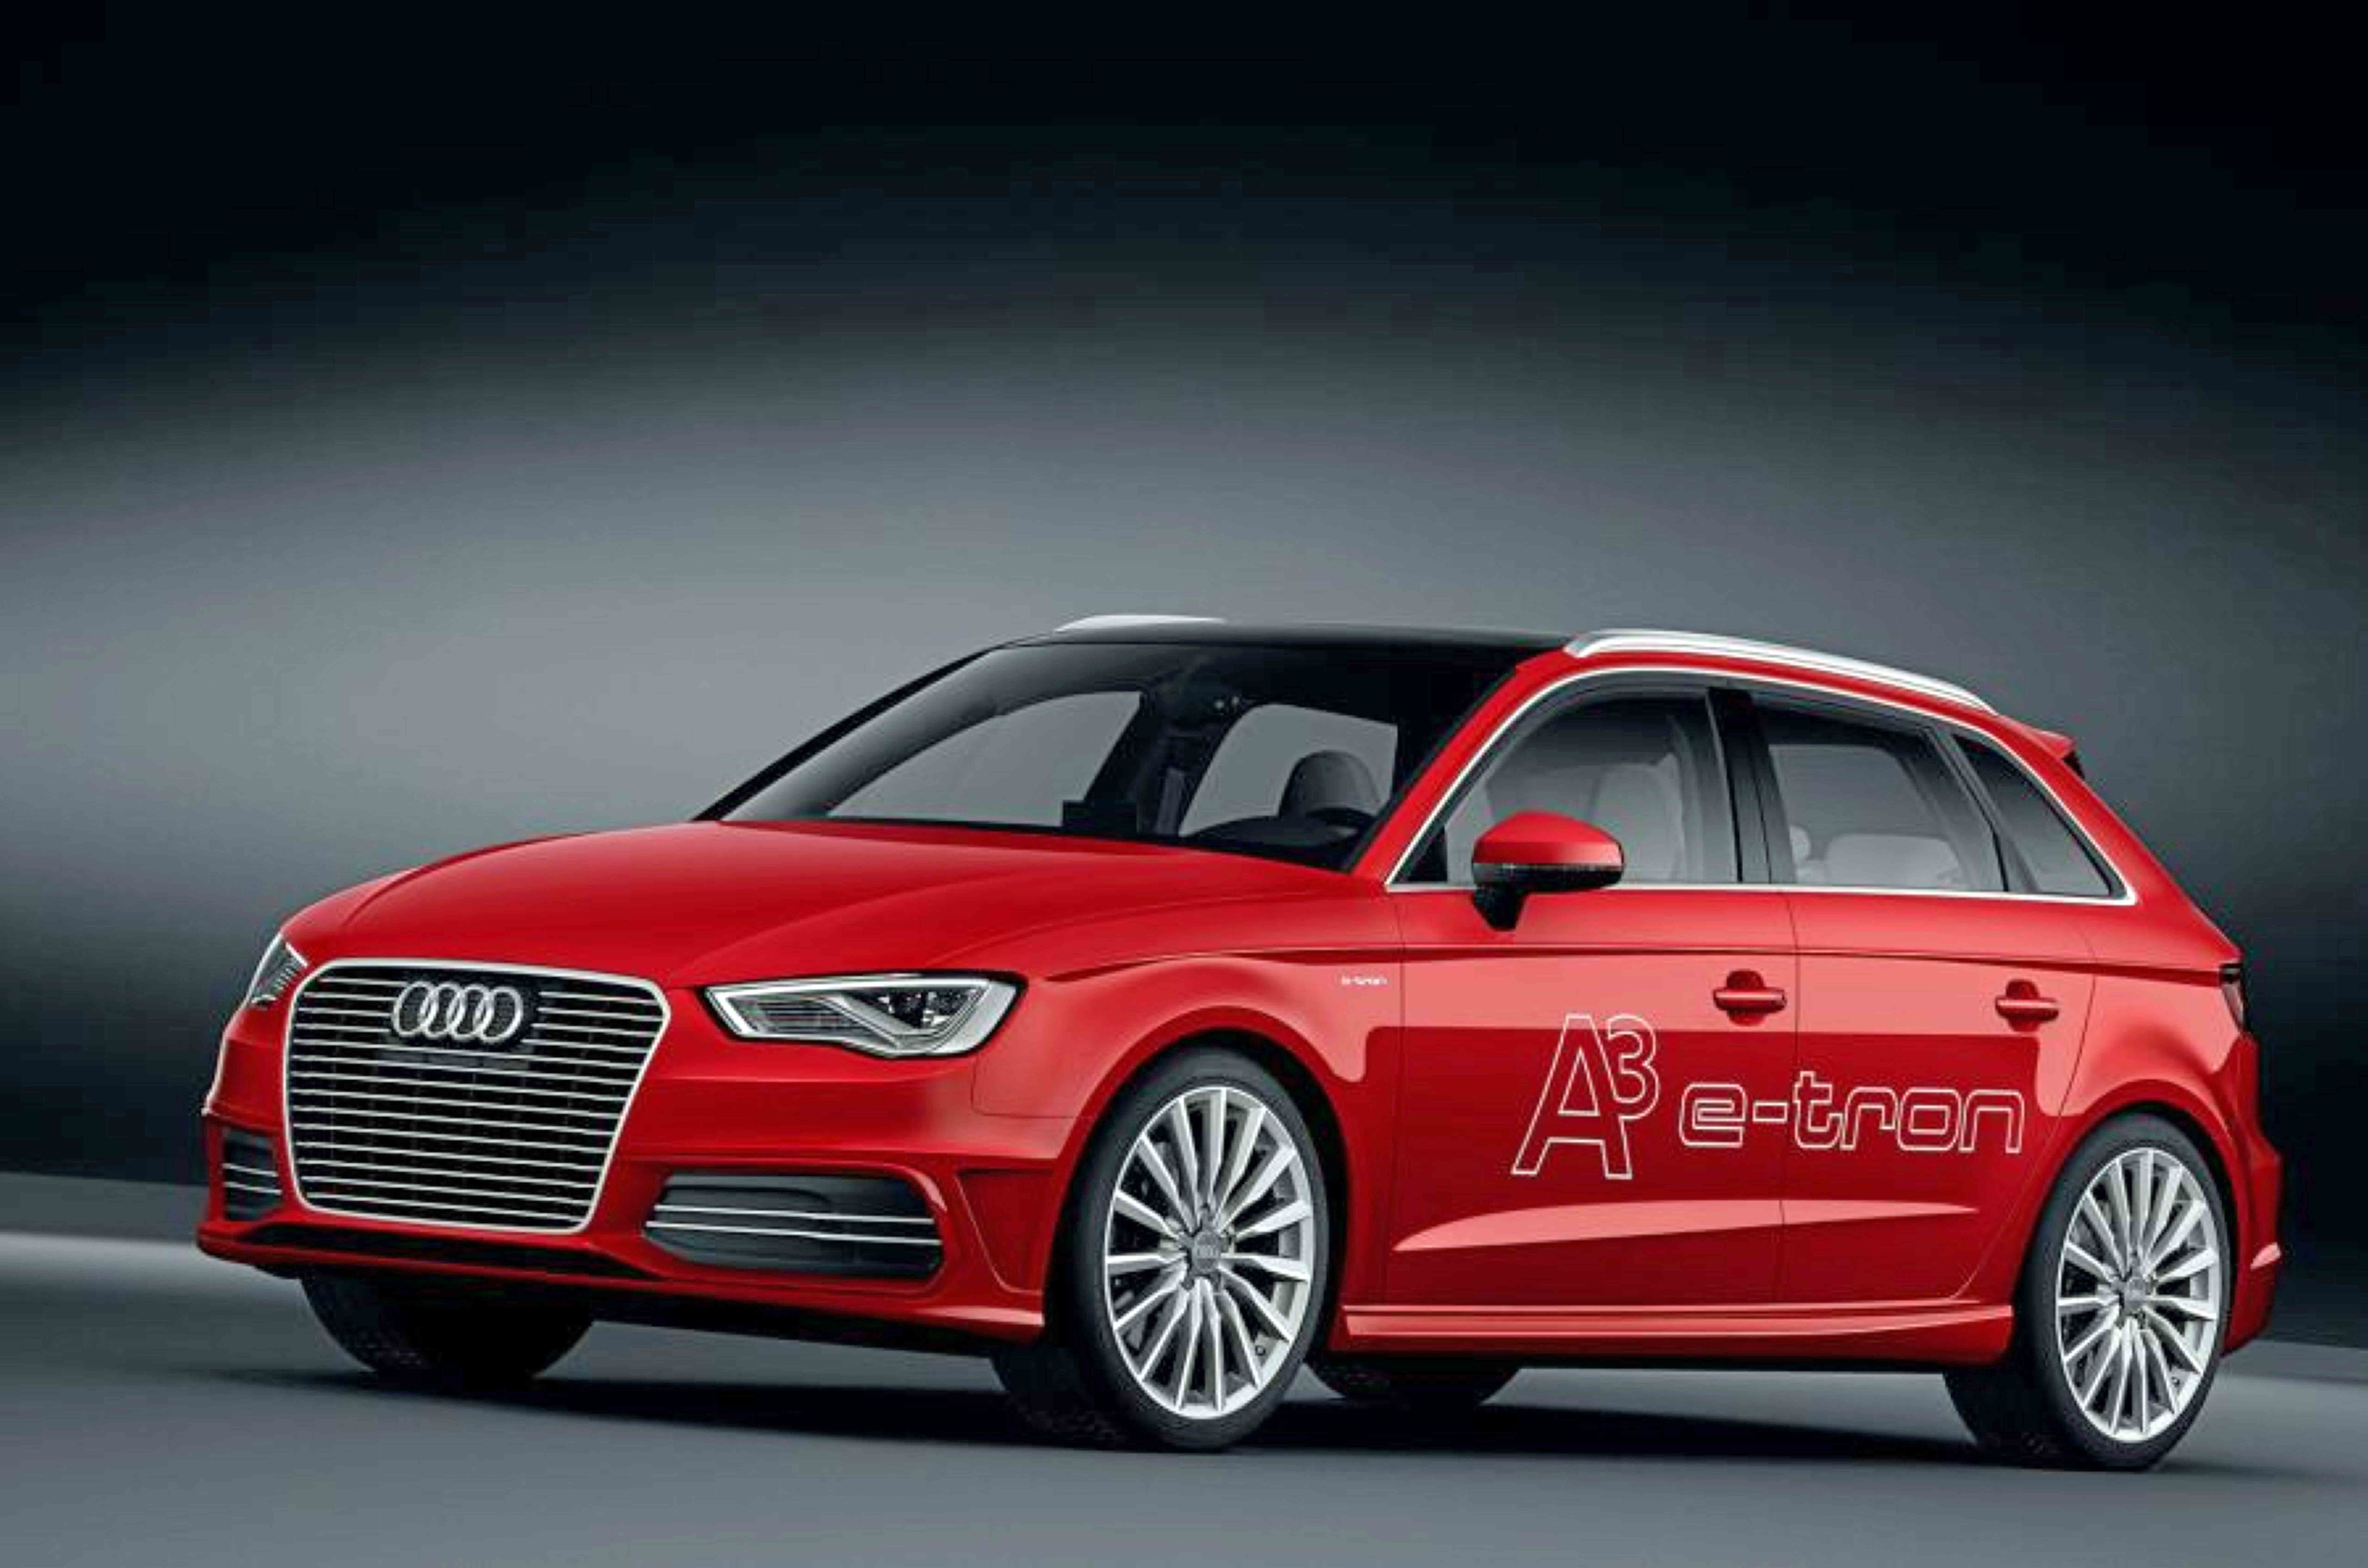 2017 audi a3 e tron washington auto show. Black Bedroom Furniture Sets. Home Design Ideas